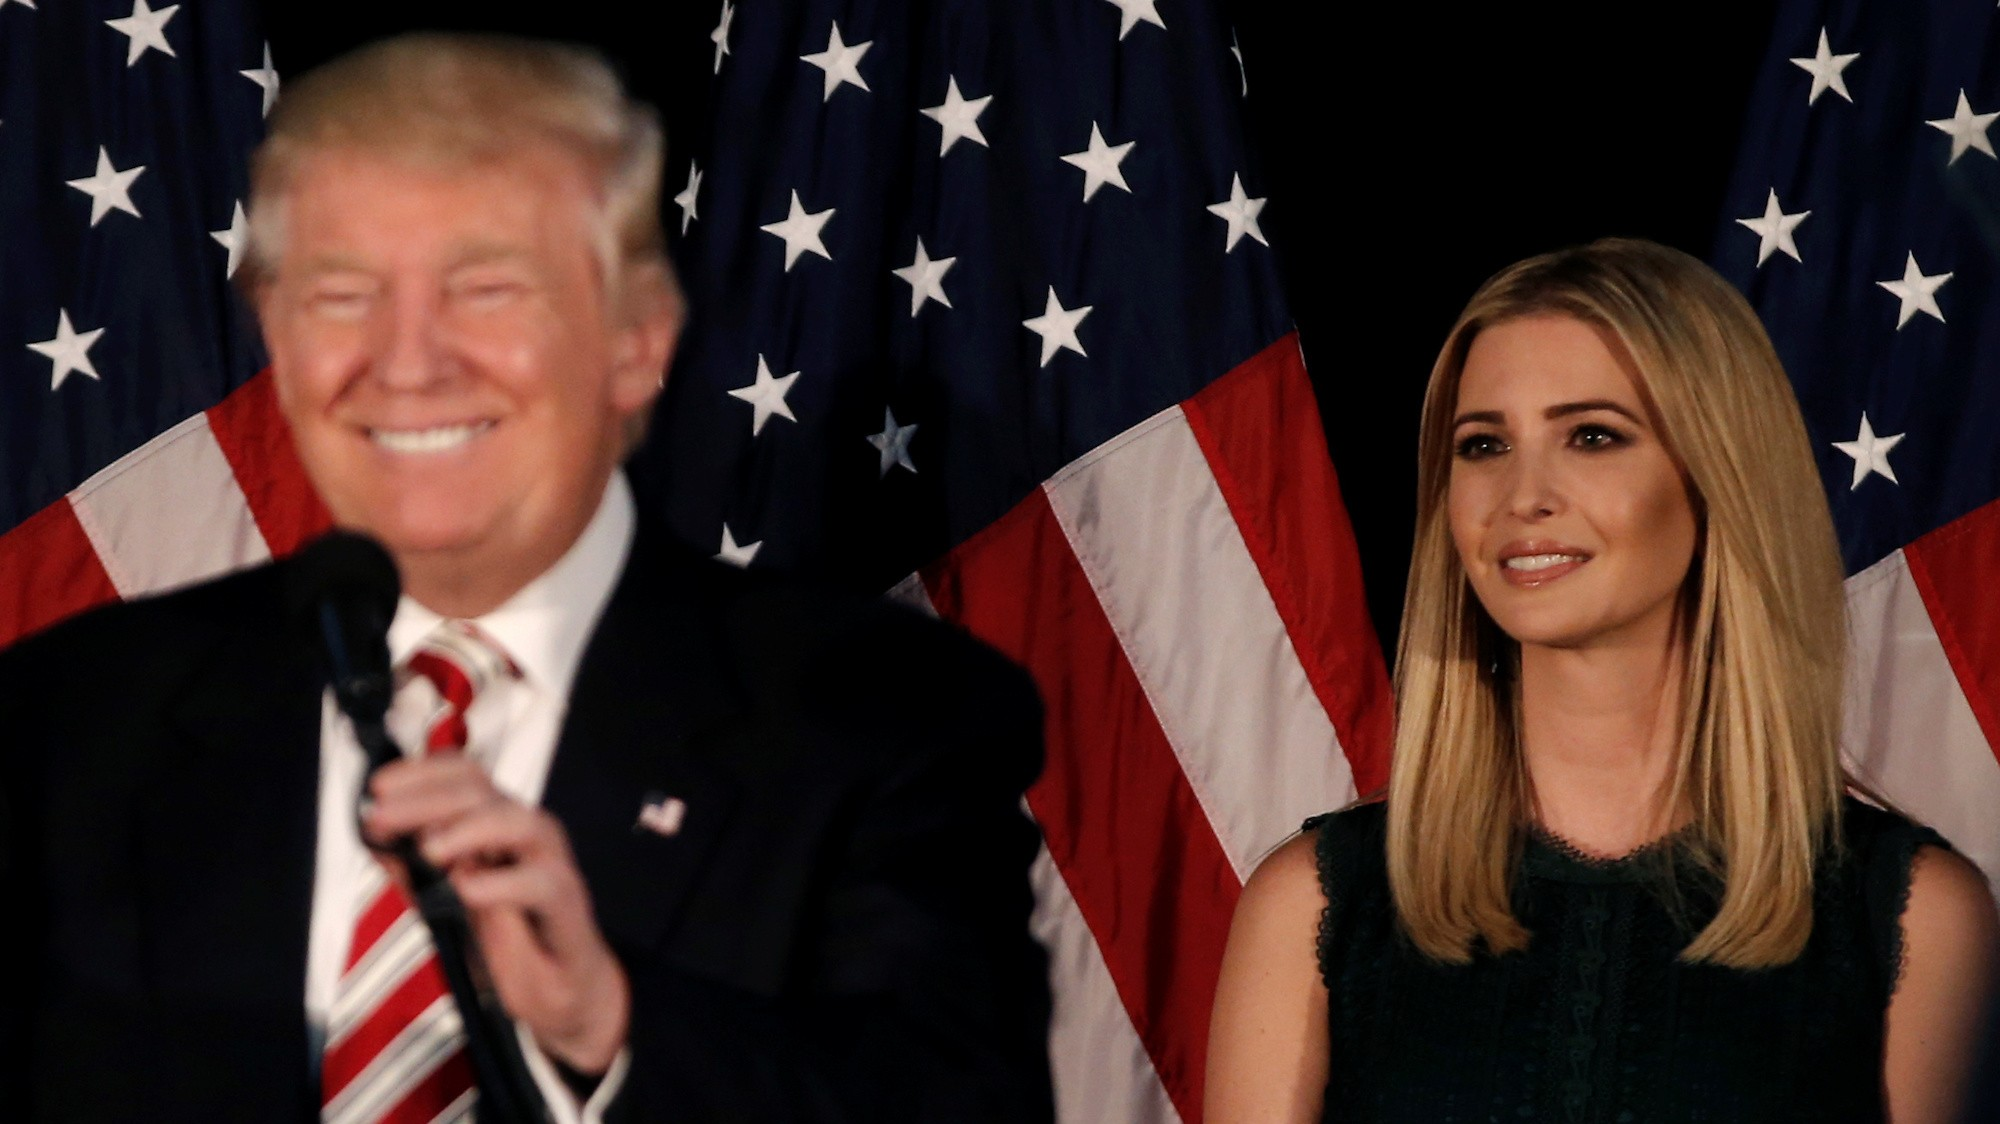 Donald Trump says only mothers deserve paid family leave